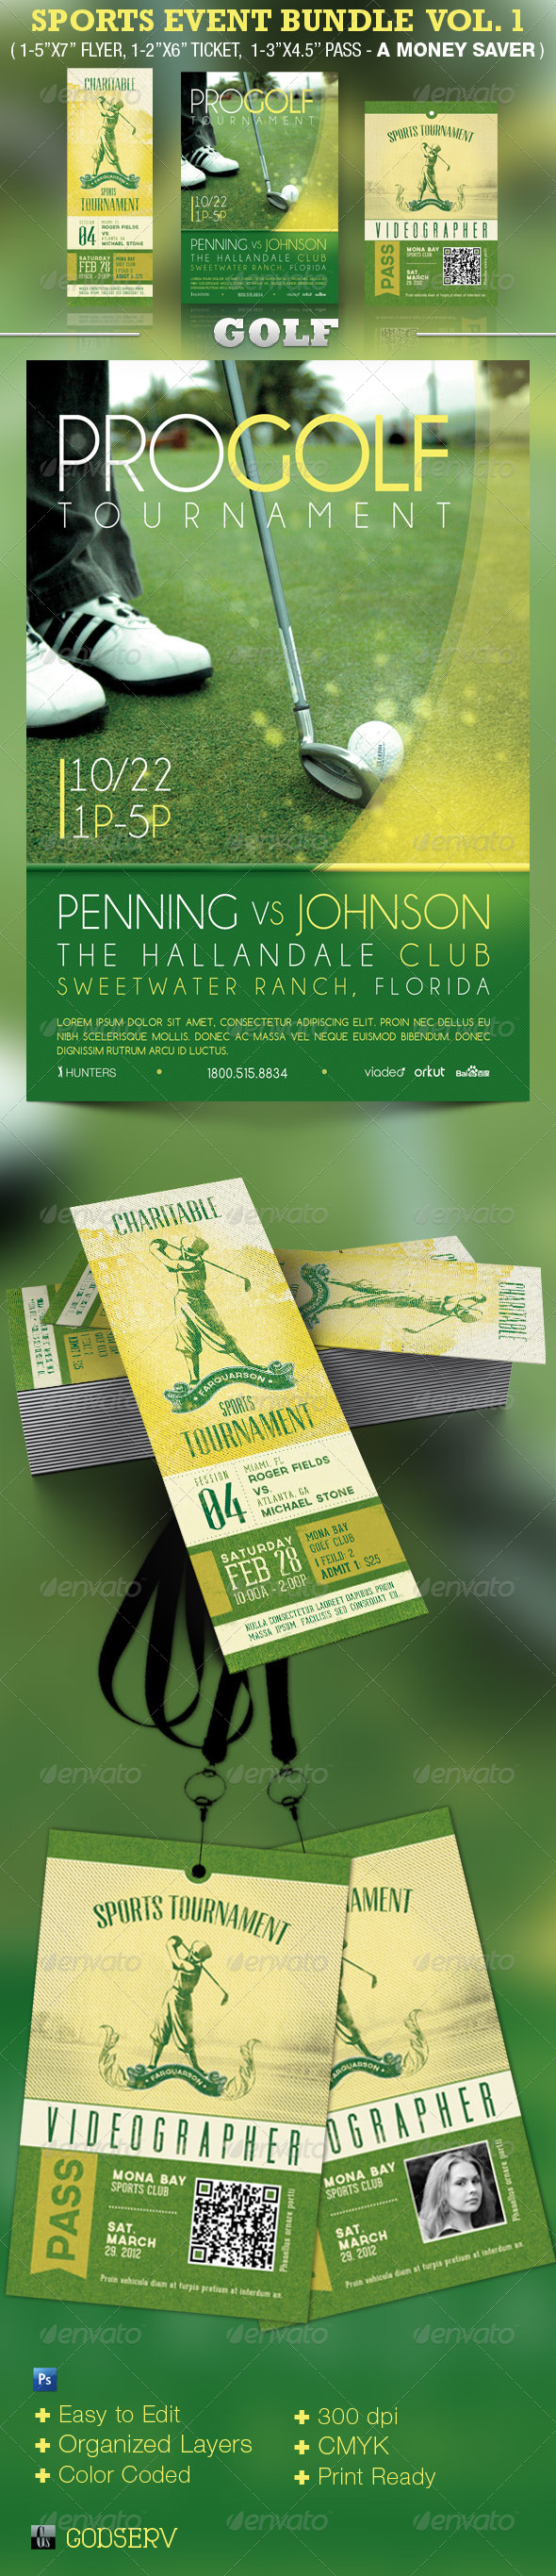 Sports Event Template Bundle Vol 1: Golf - Sports Events